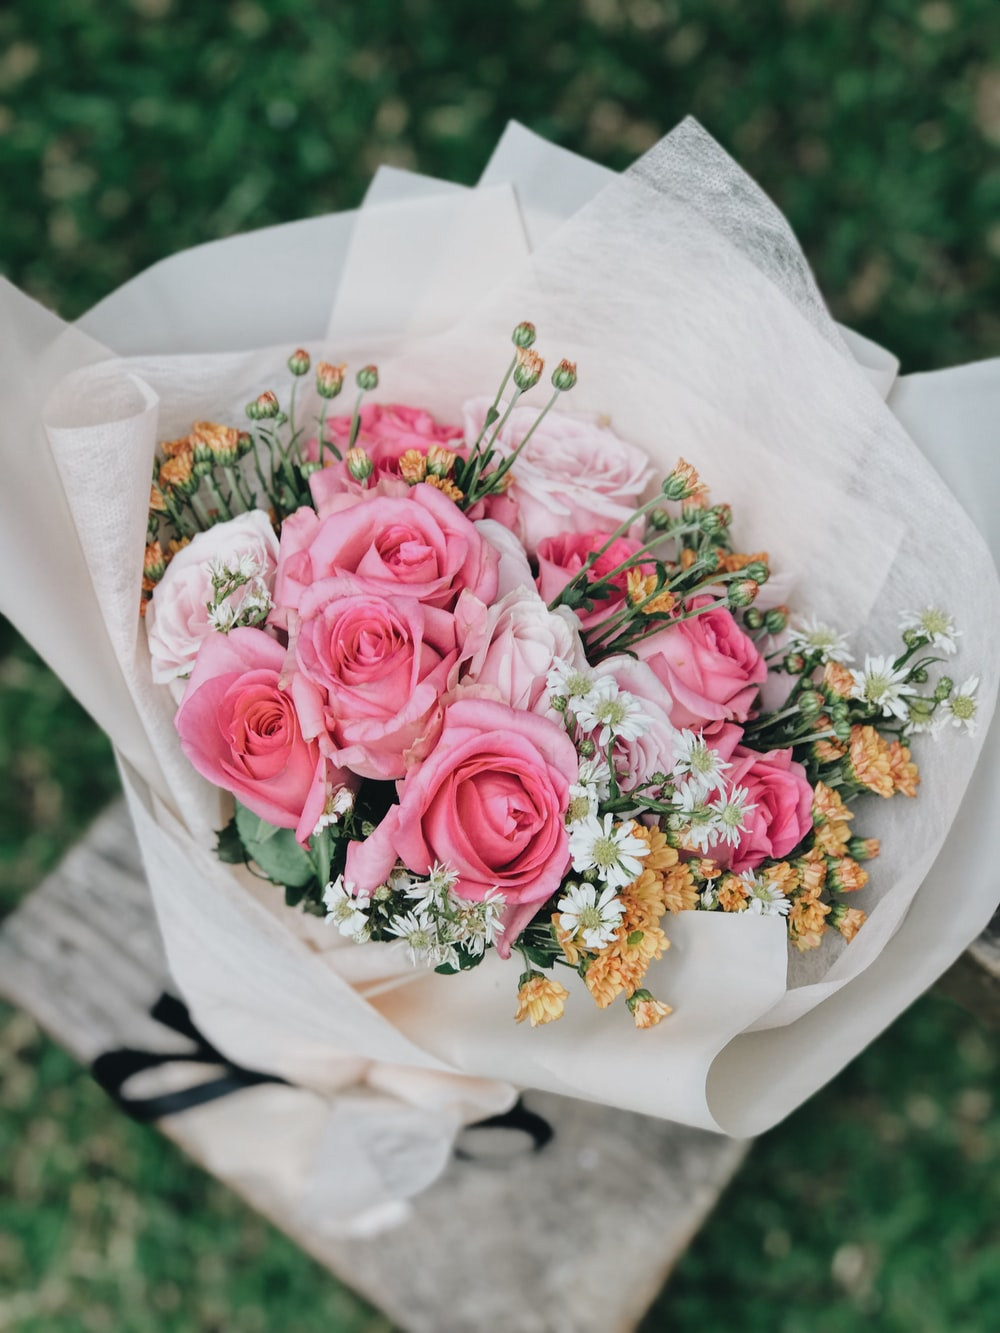 500 bouquet pictures download free images on unsplash pink and white rose bouquet izmirmasajfo